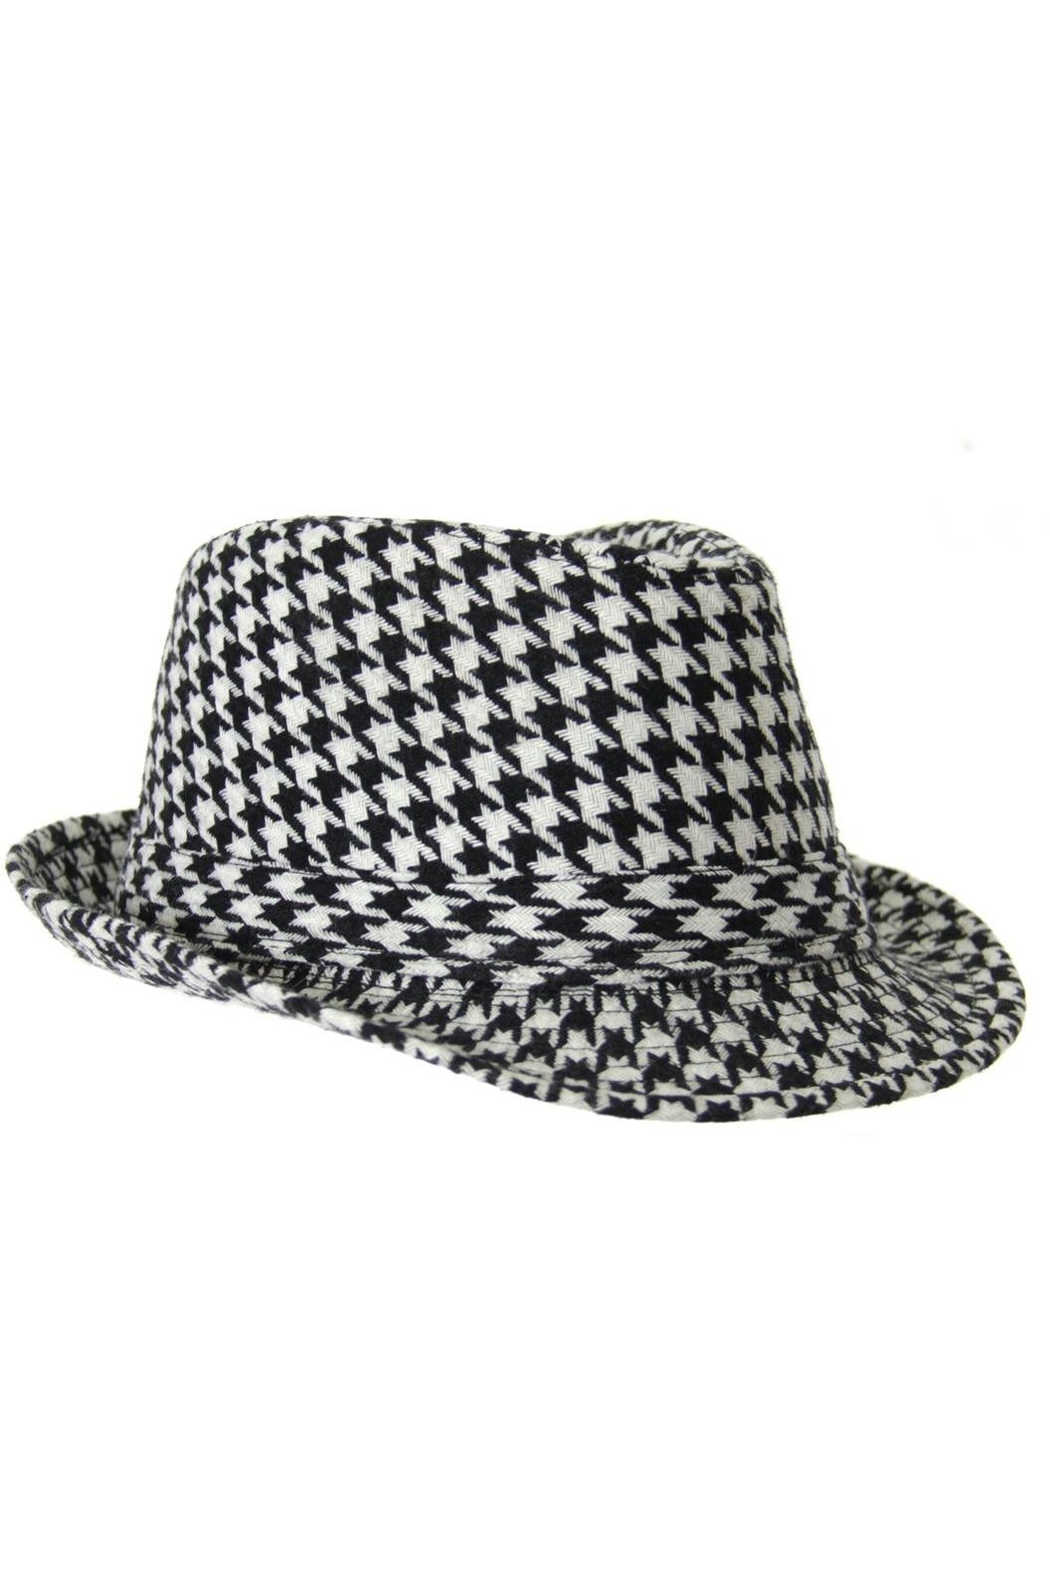 d6e54617e4213 Diane s Accessories Houndstooth Fedora Hat from Alabama by Jubilee ...